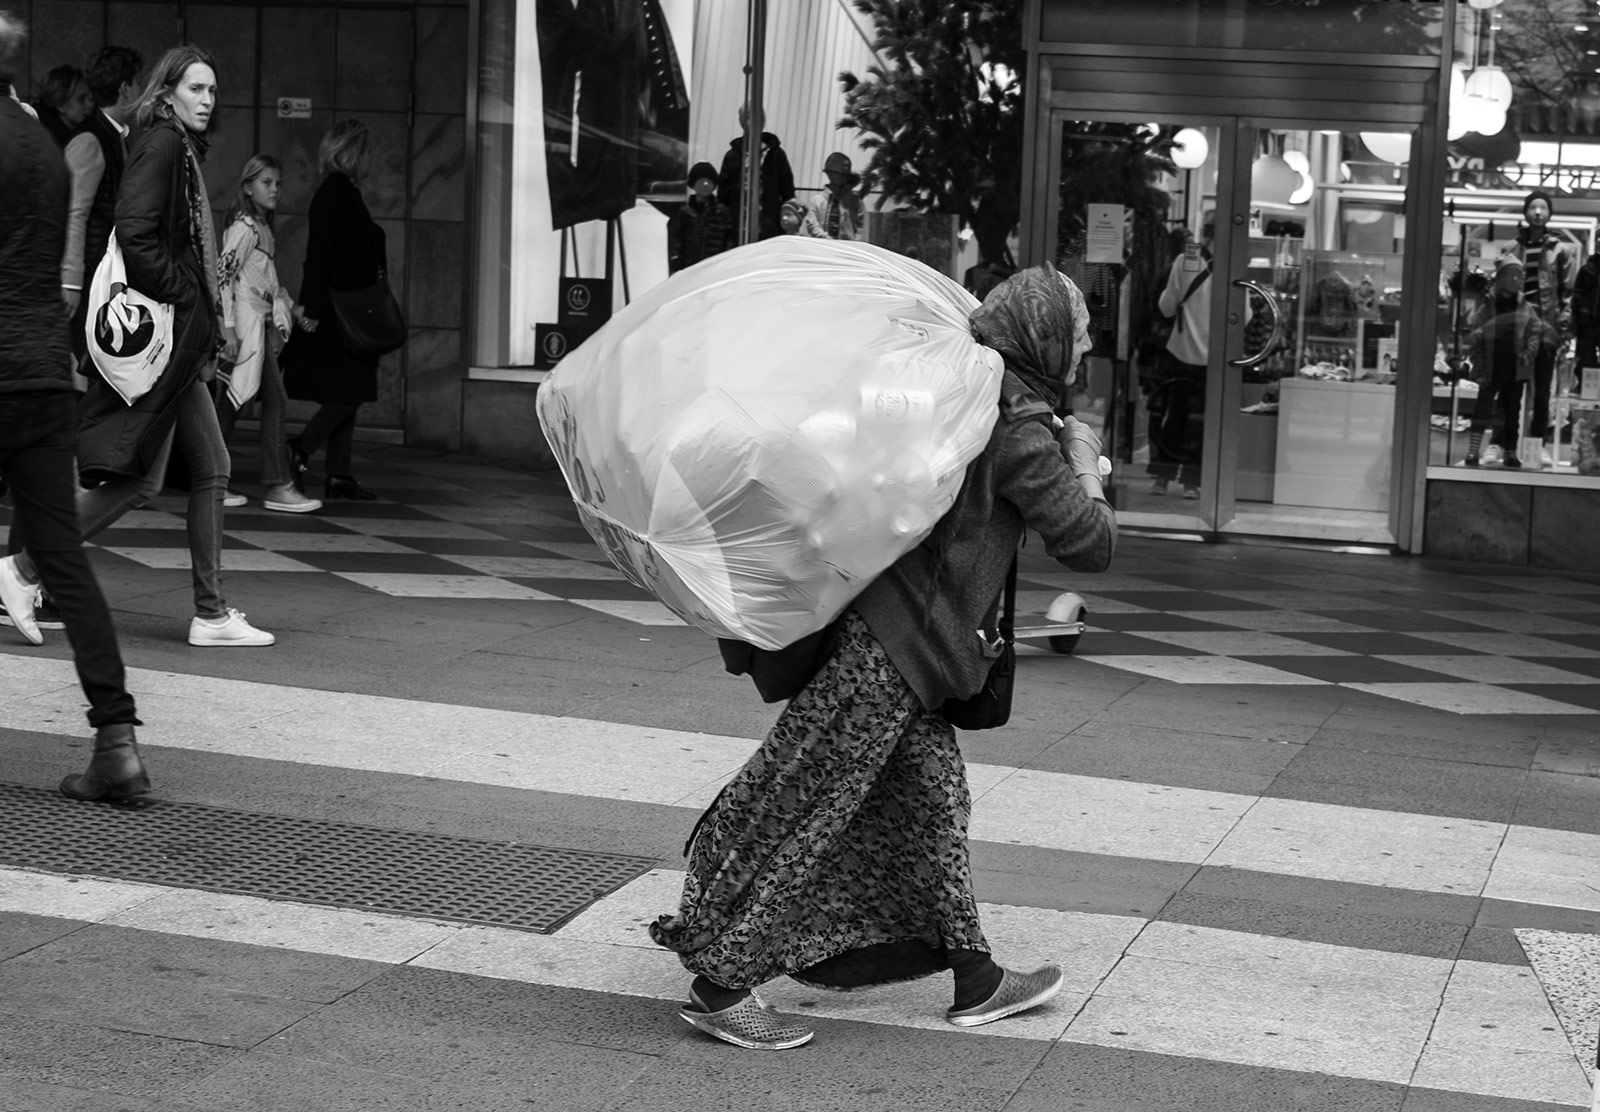 Lady carrying big bag of cans